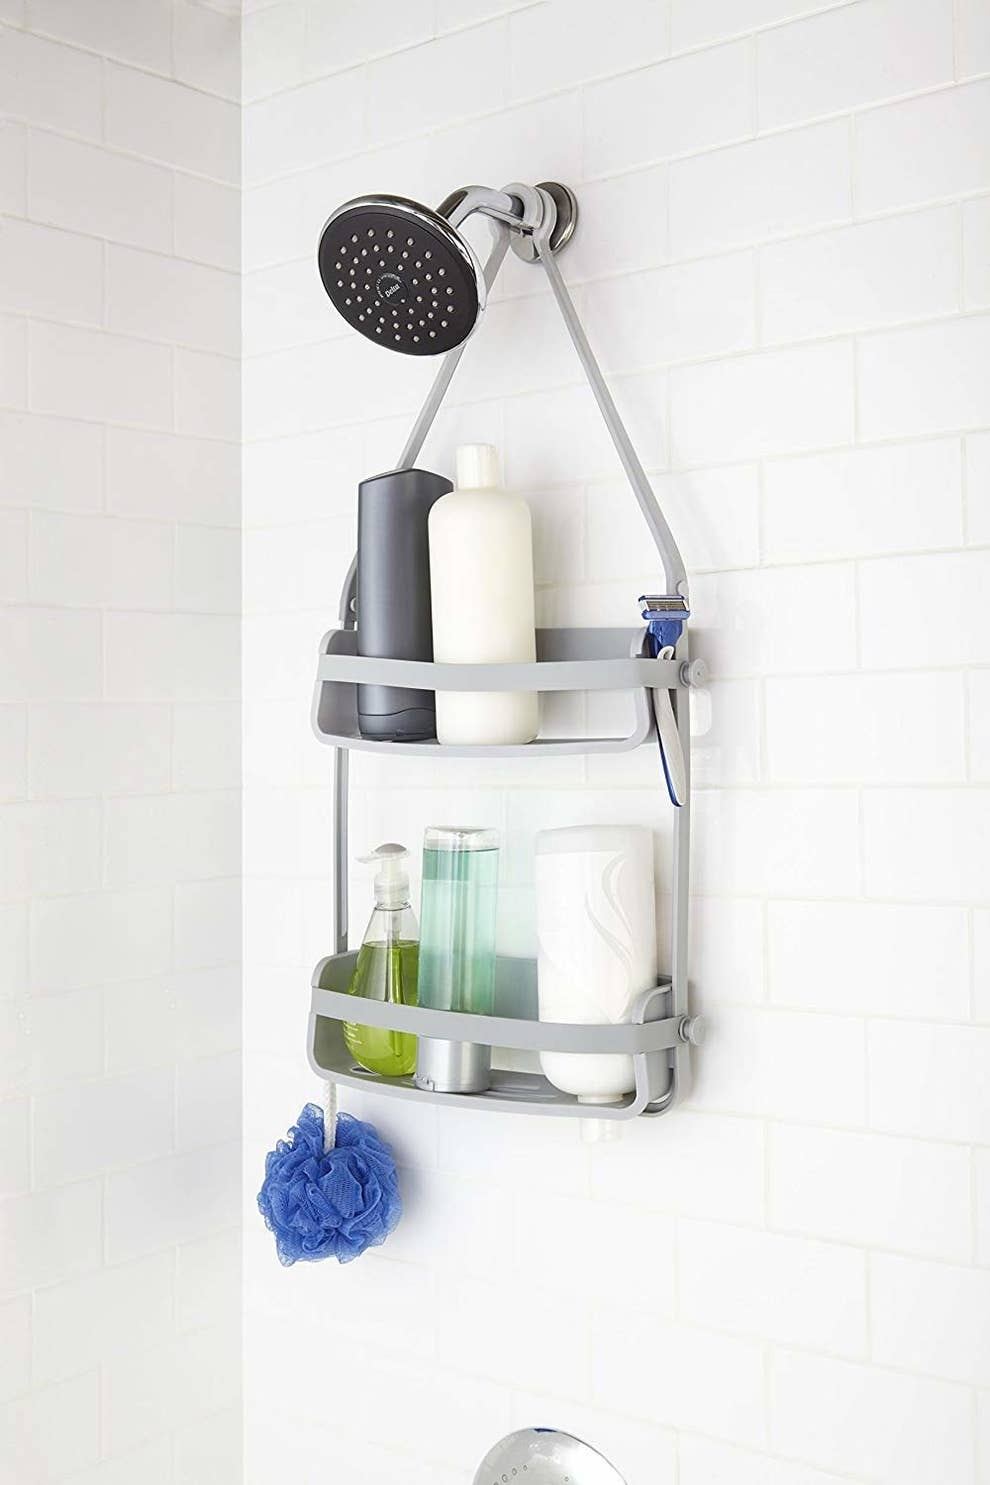 28 Of The Best Bathroom Accessories You Can Get On Amazon